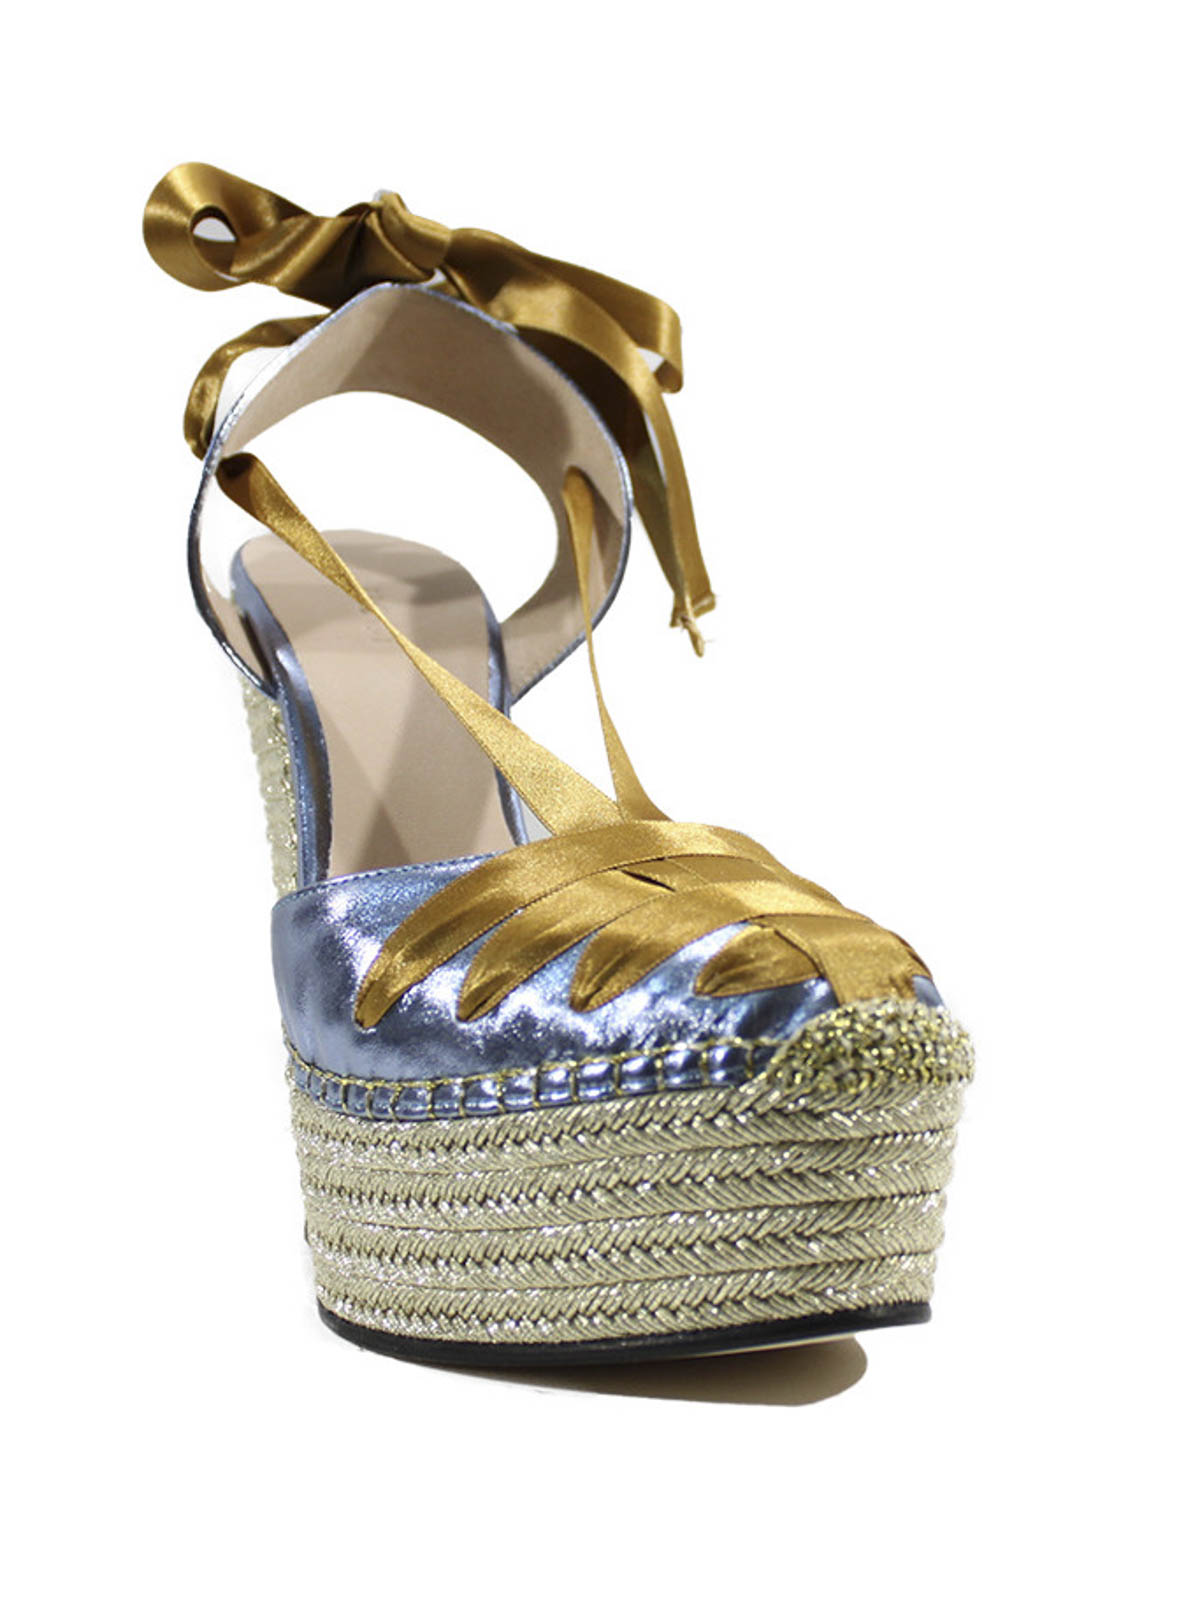 51f139a1bd49b Gucci - Alexis metallic leather wrap wedges - sandals - 408223 BJ800 ...